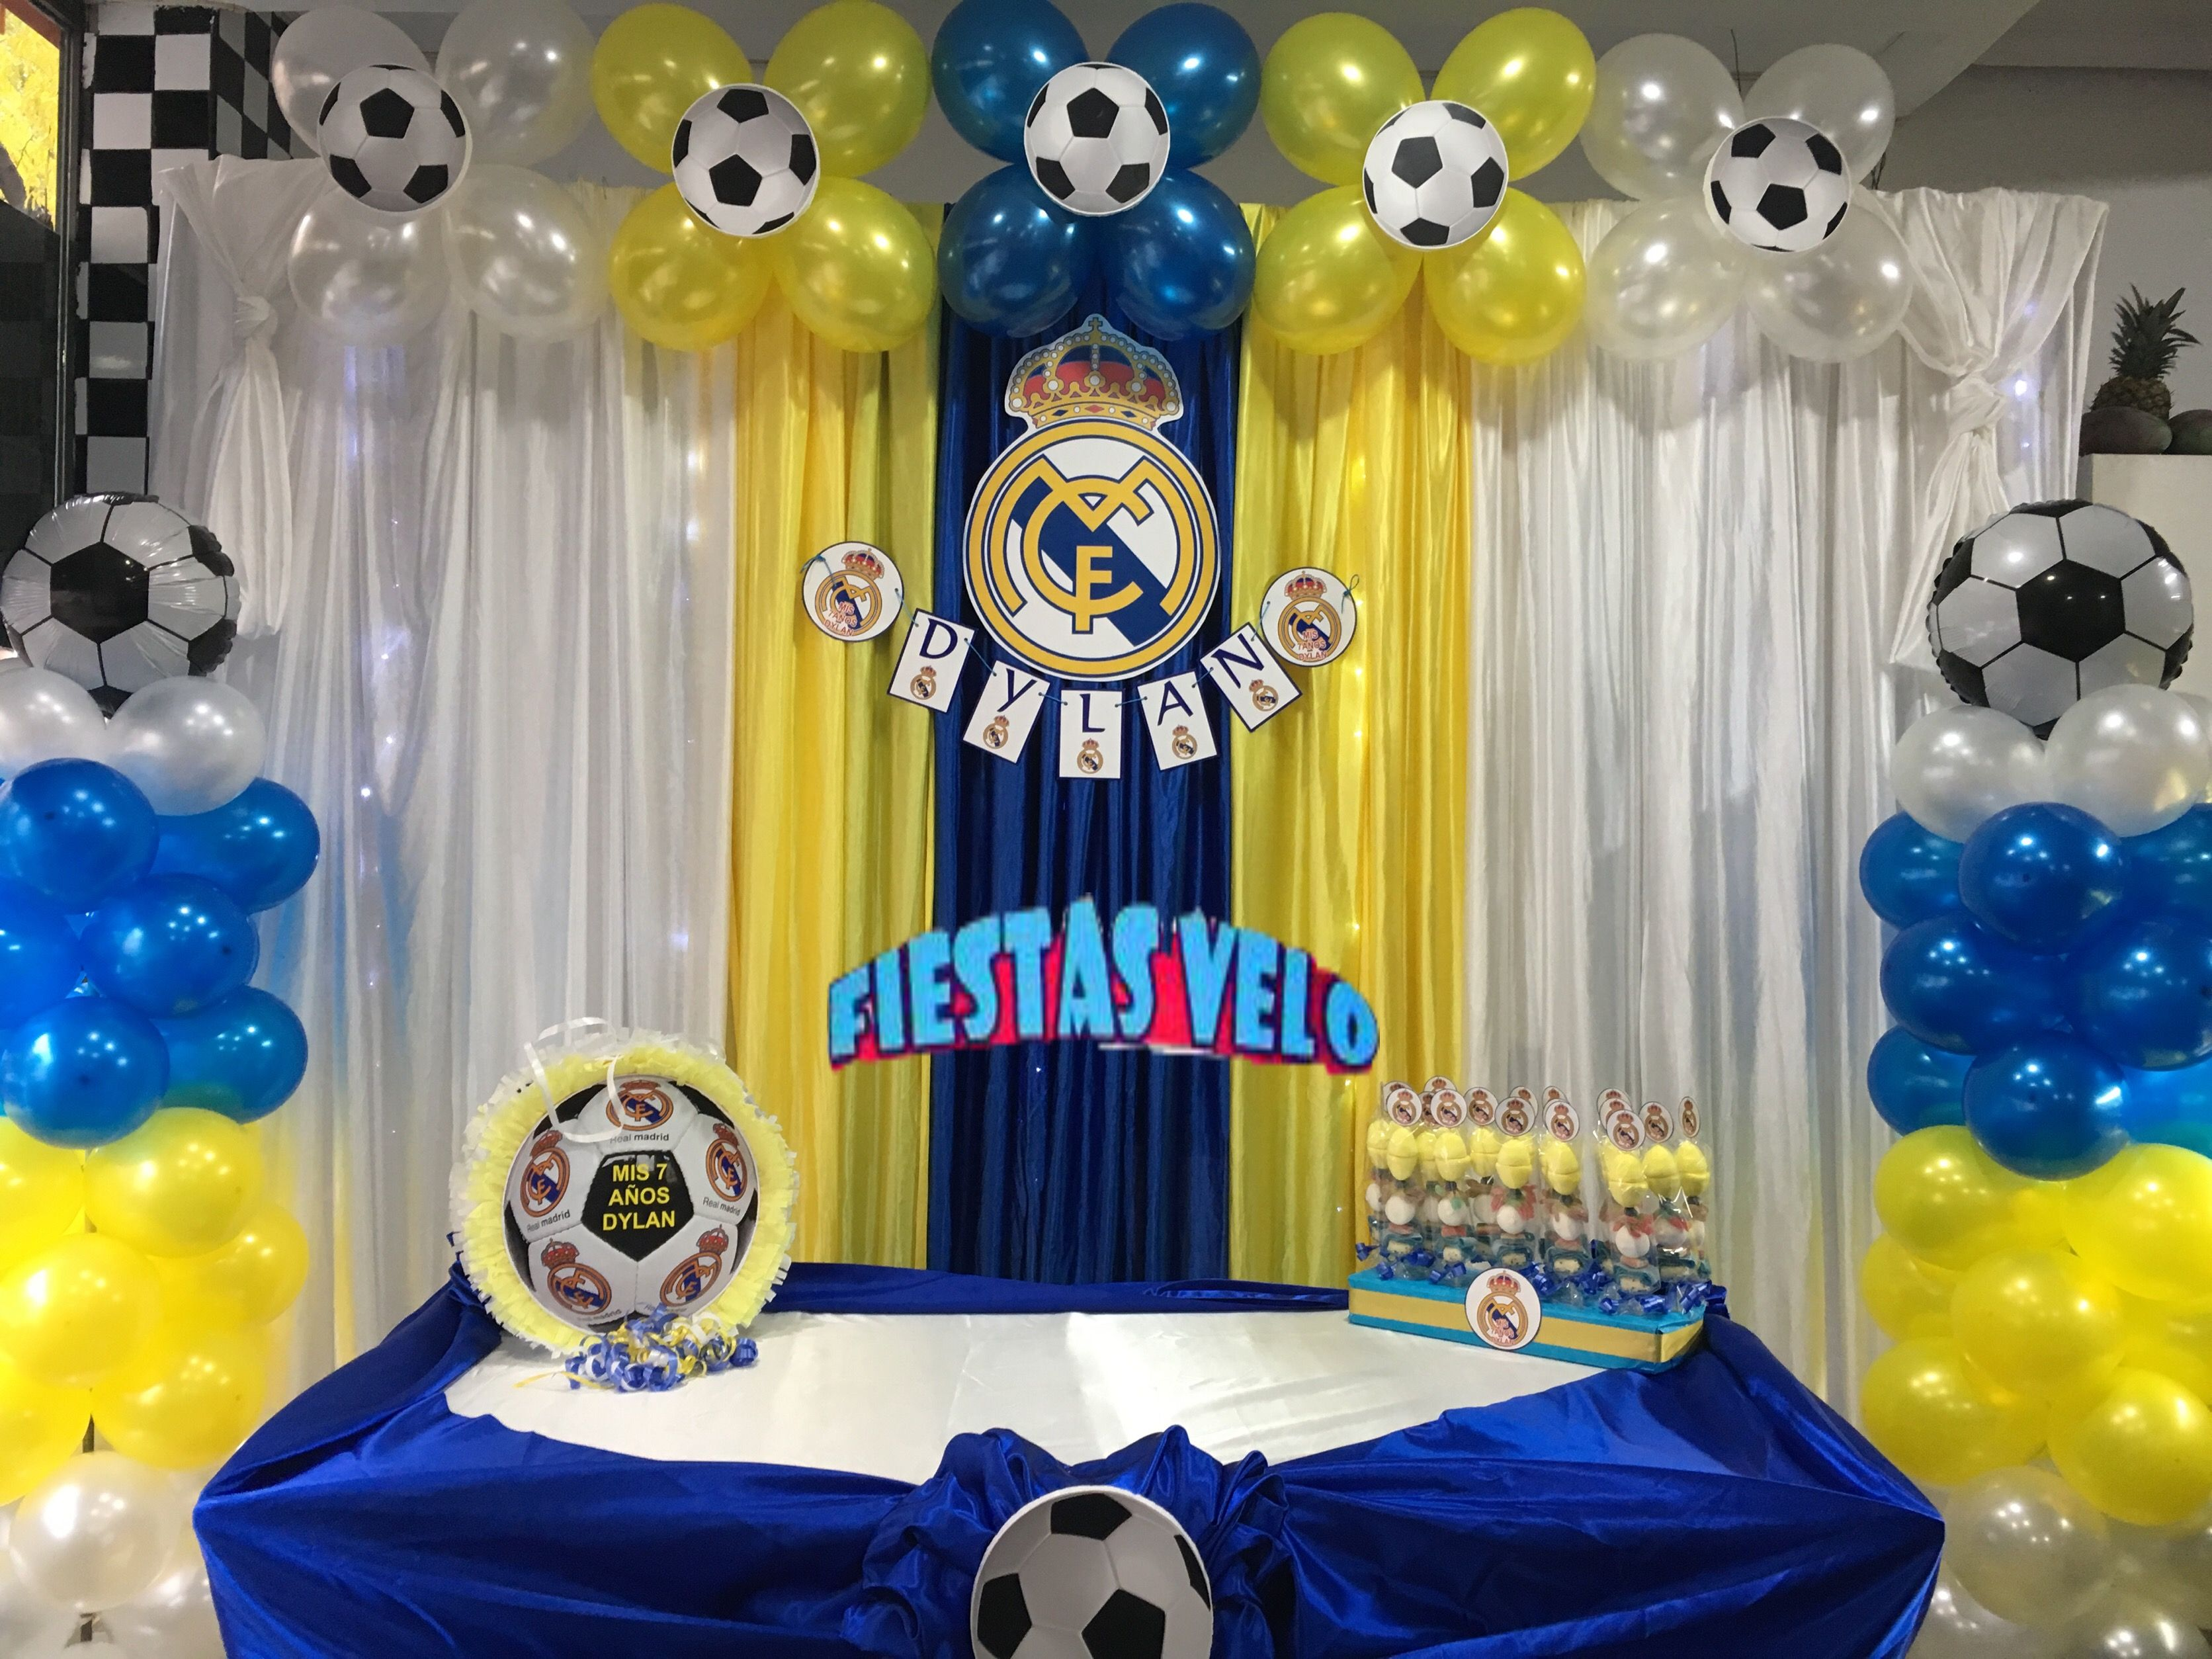 Pin by decoraciones para eventos fiestas velo on decoracin real bday party ideas fiesta real madrid soccer birthday parties 2nd birthday berenice party parties kids dessert tables theme parties altavistaventures Images